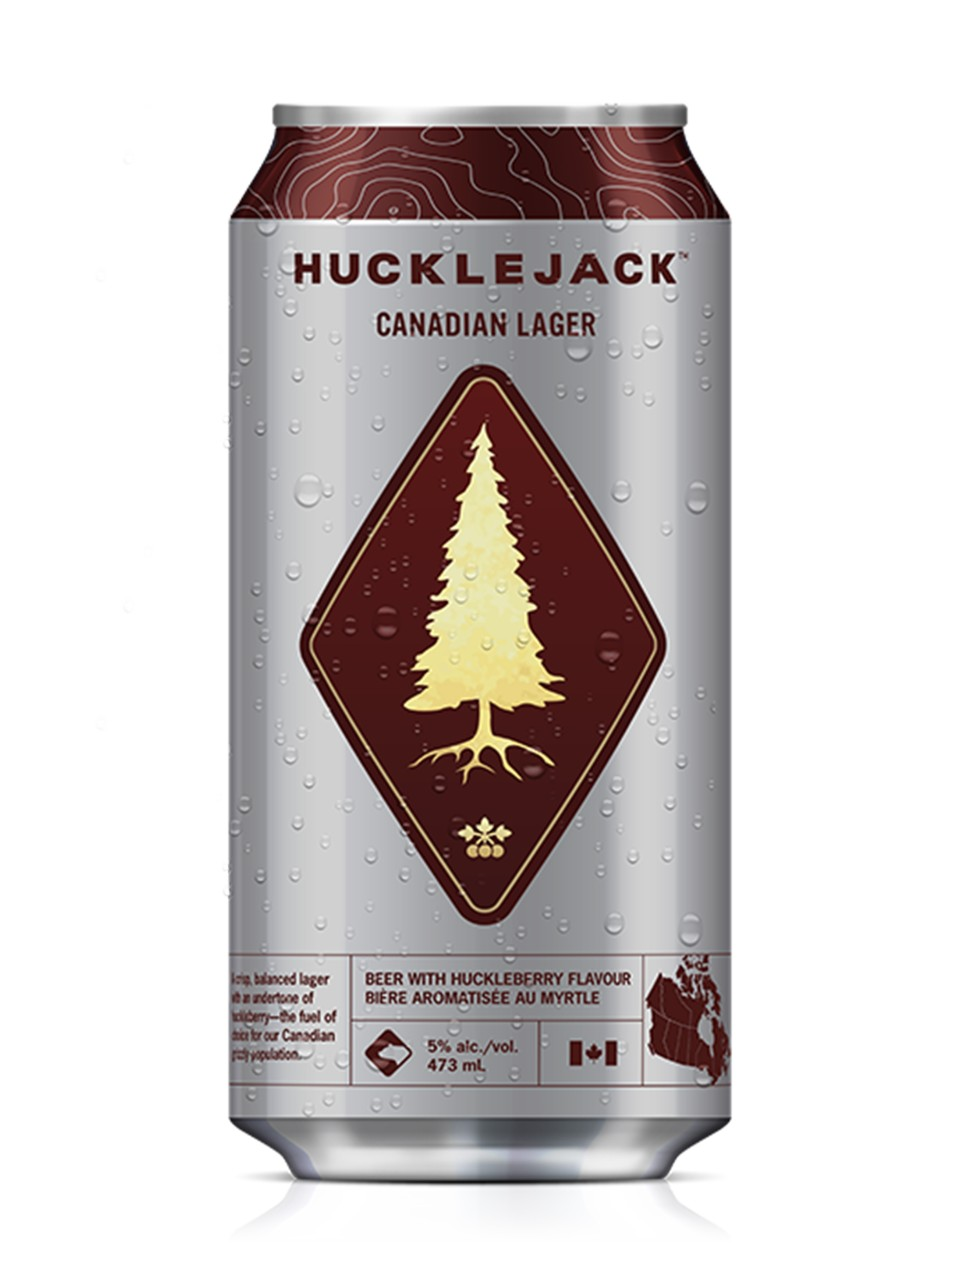 Hucklejack Canadian Lager from LCBO